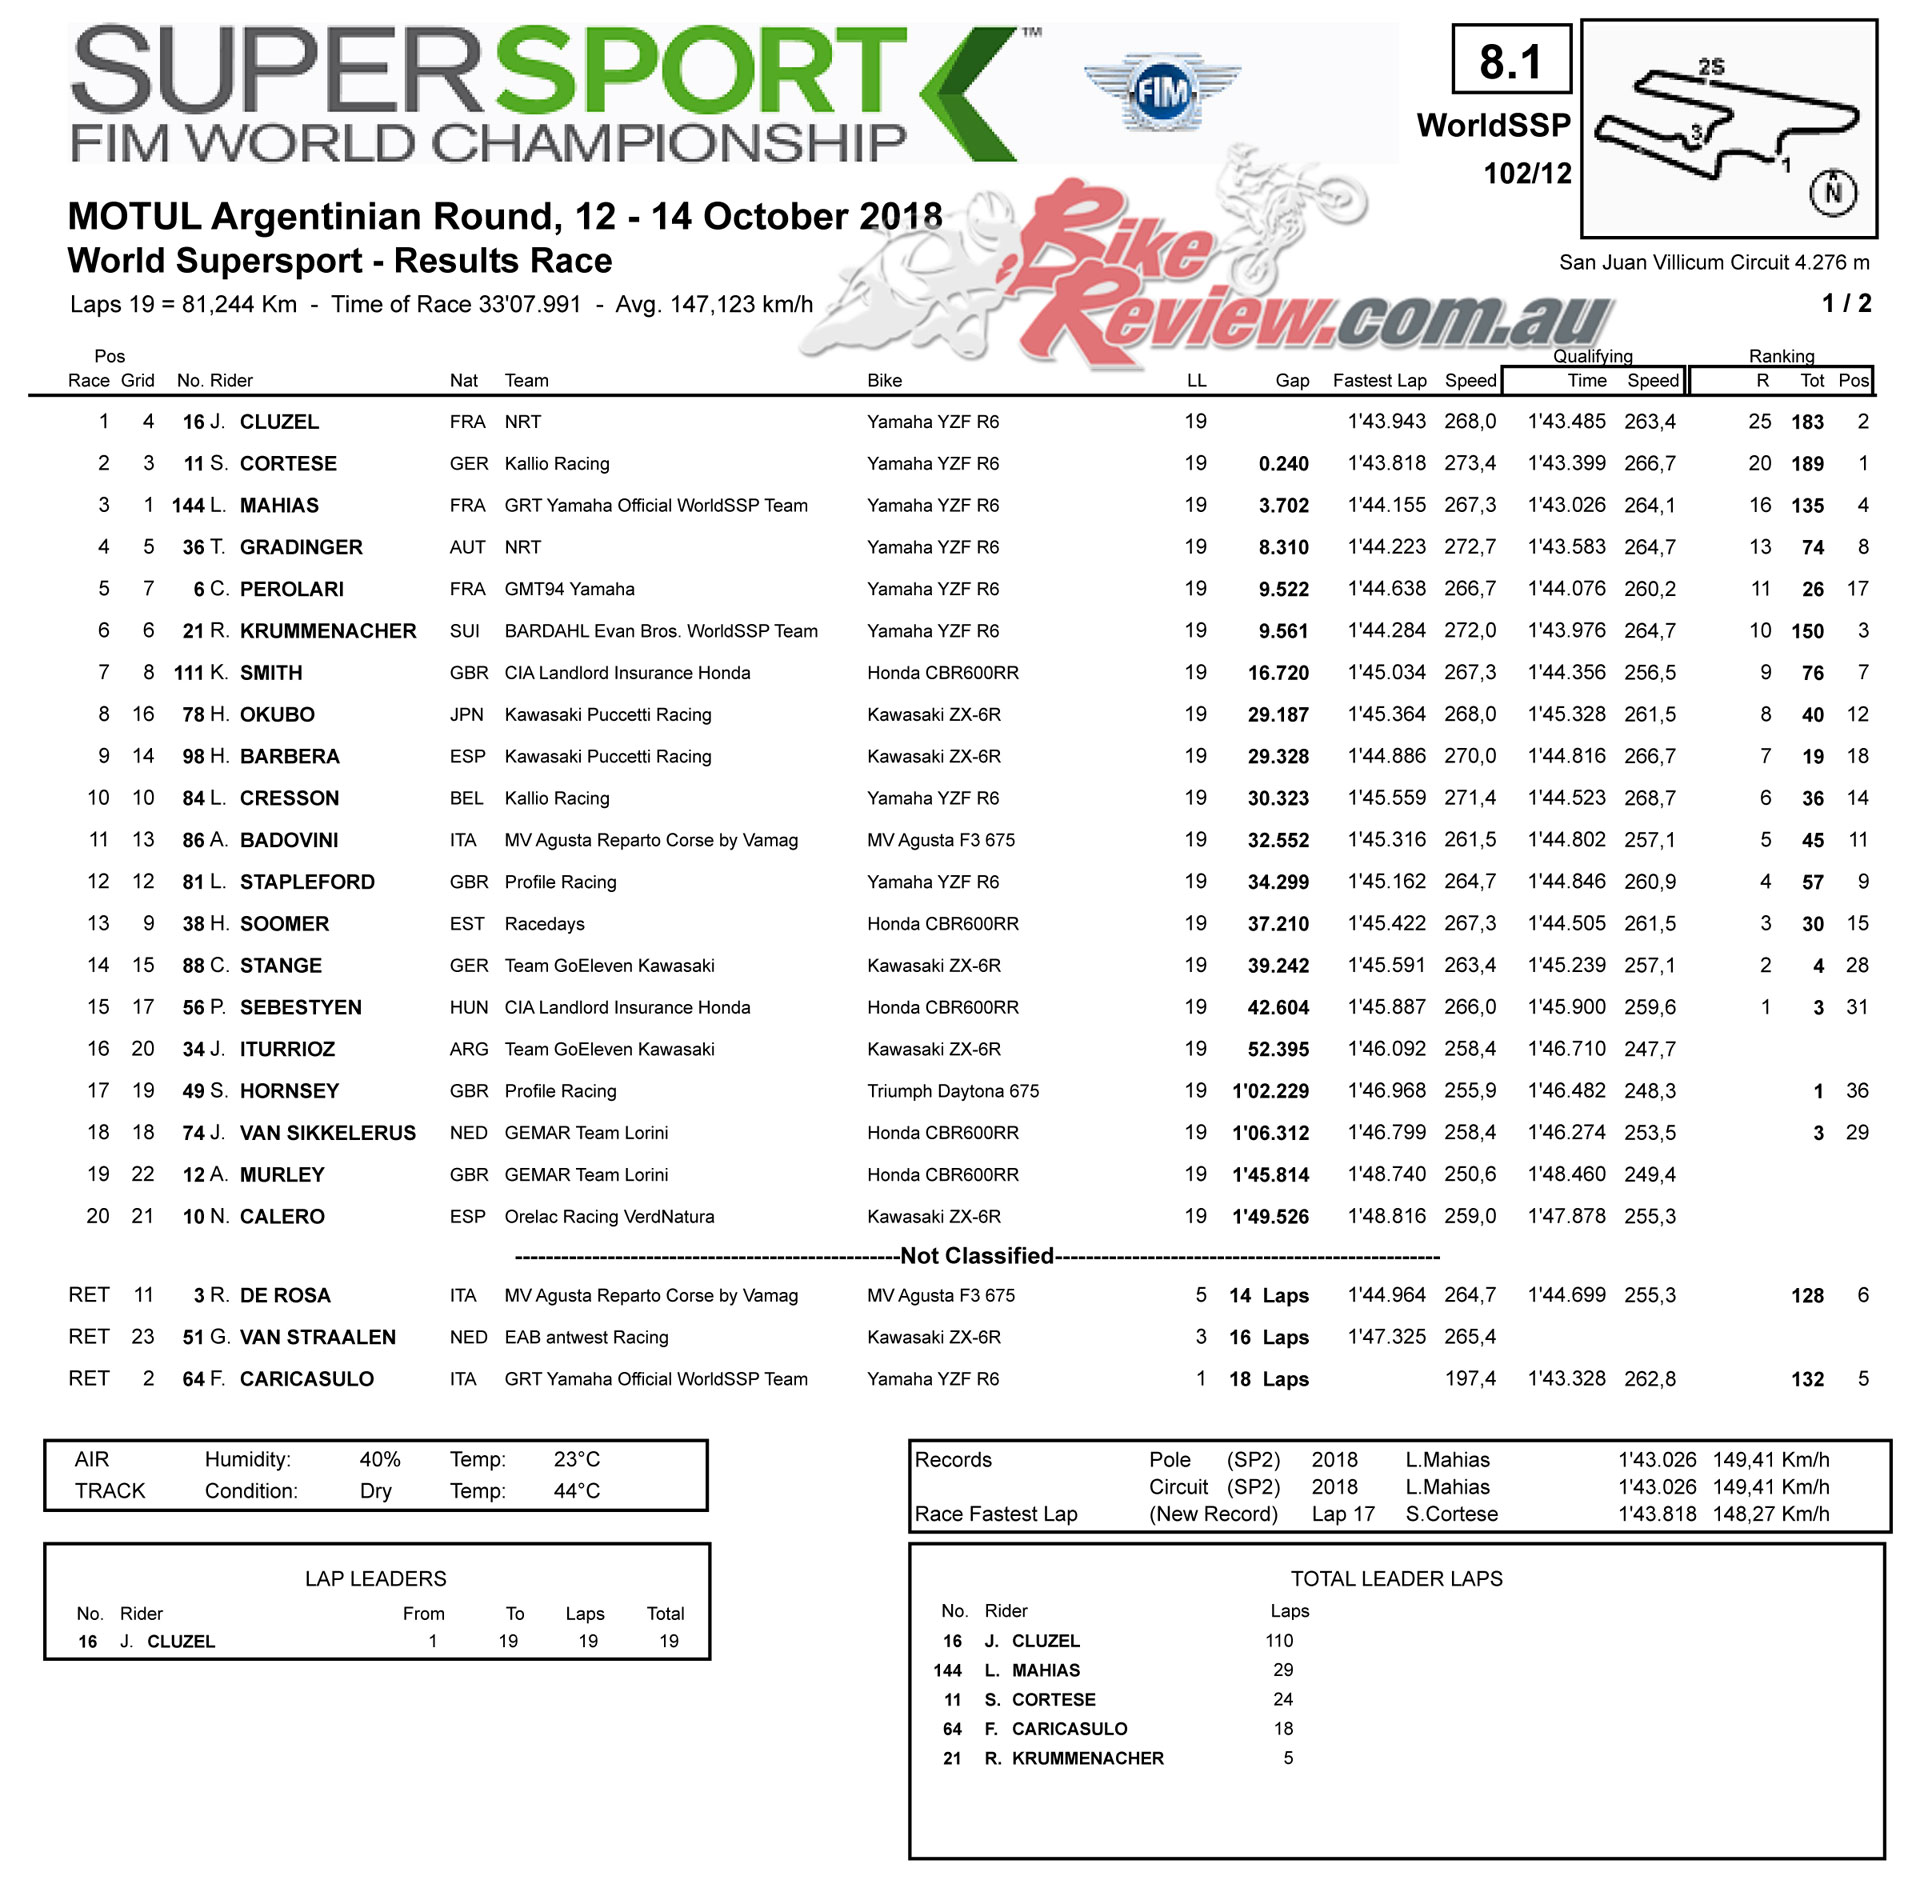 World Supersport Race Results - Argentina 2018